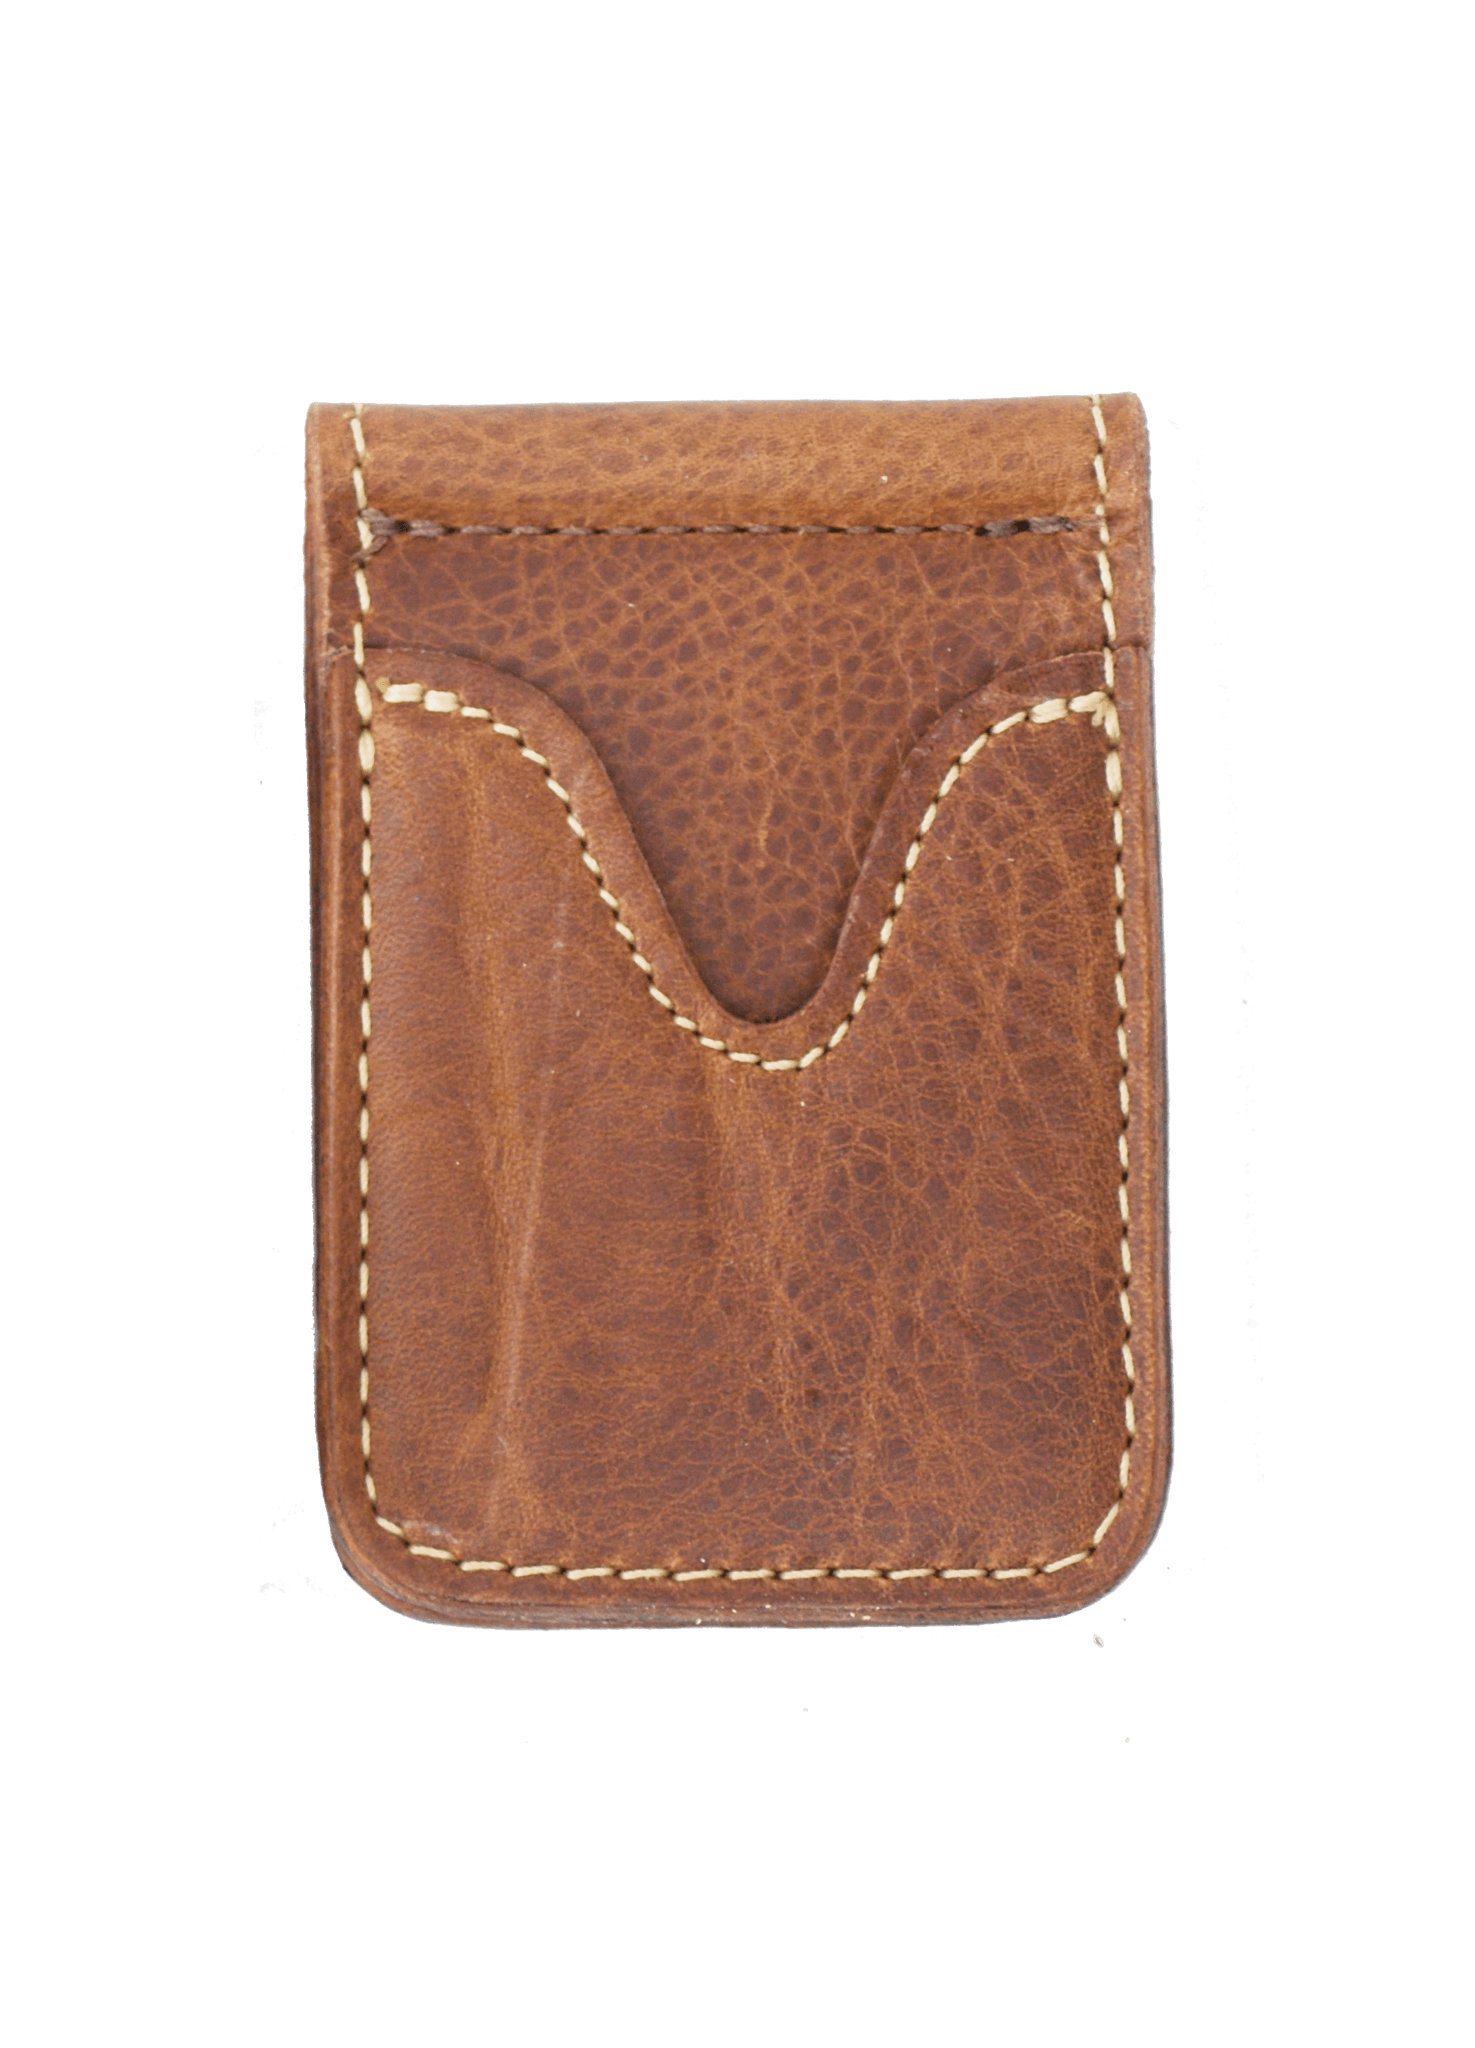 Wallet clipart leather wallet. Minimalist card with money